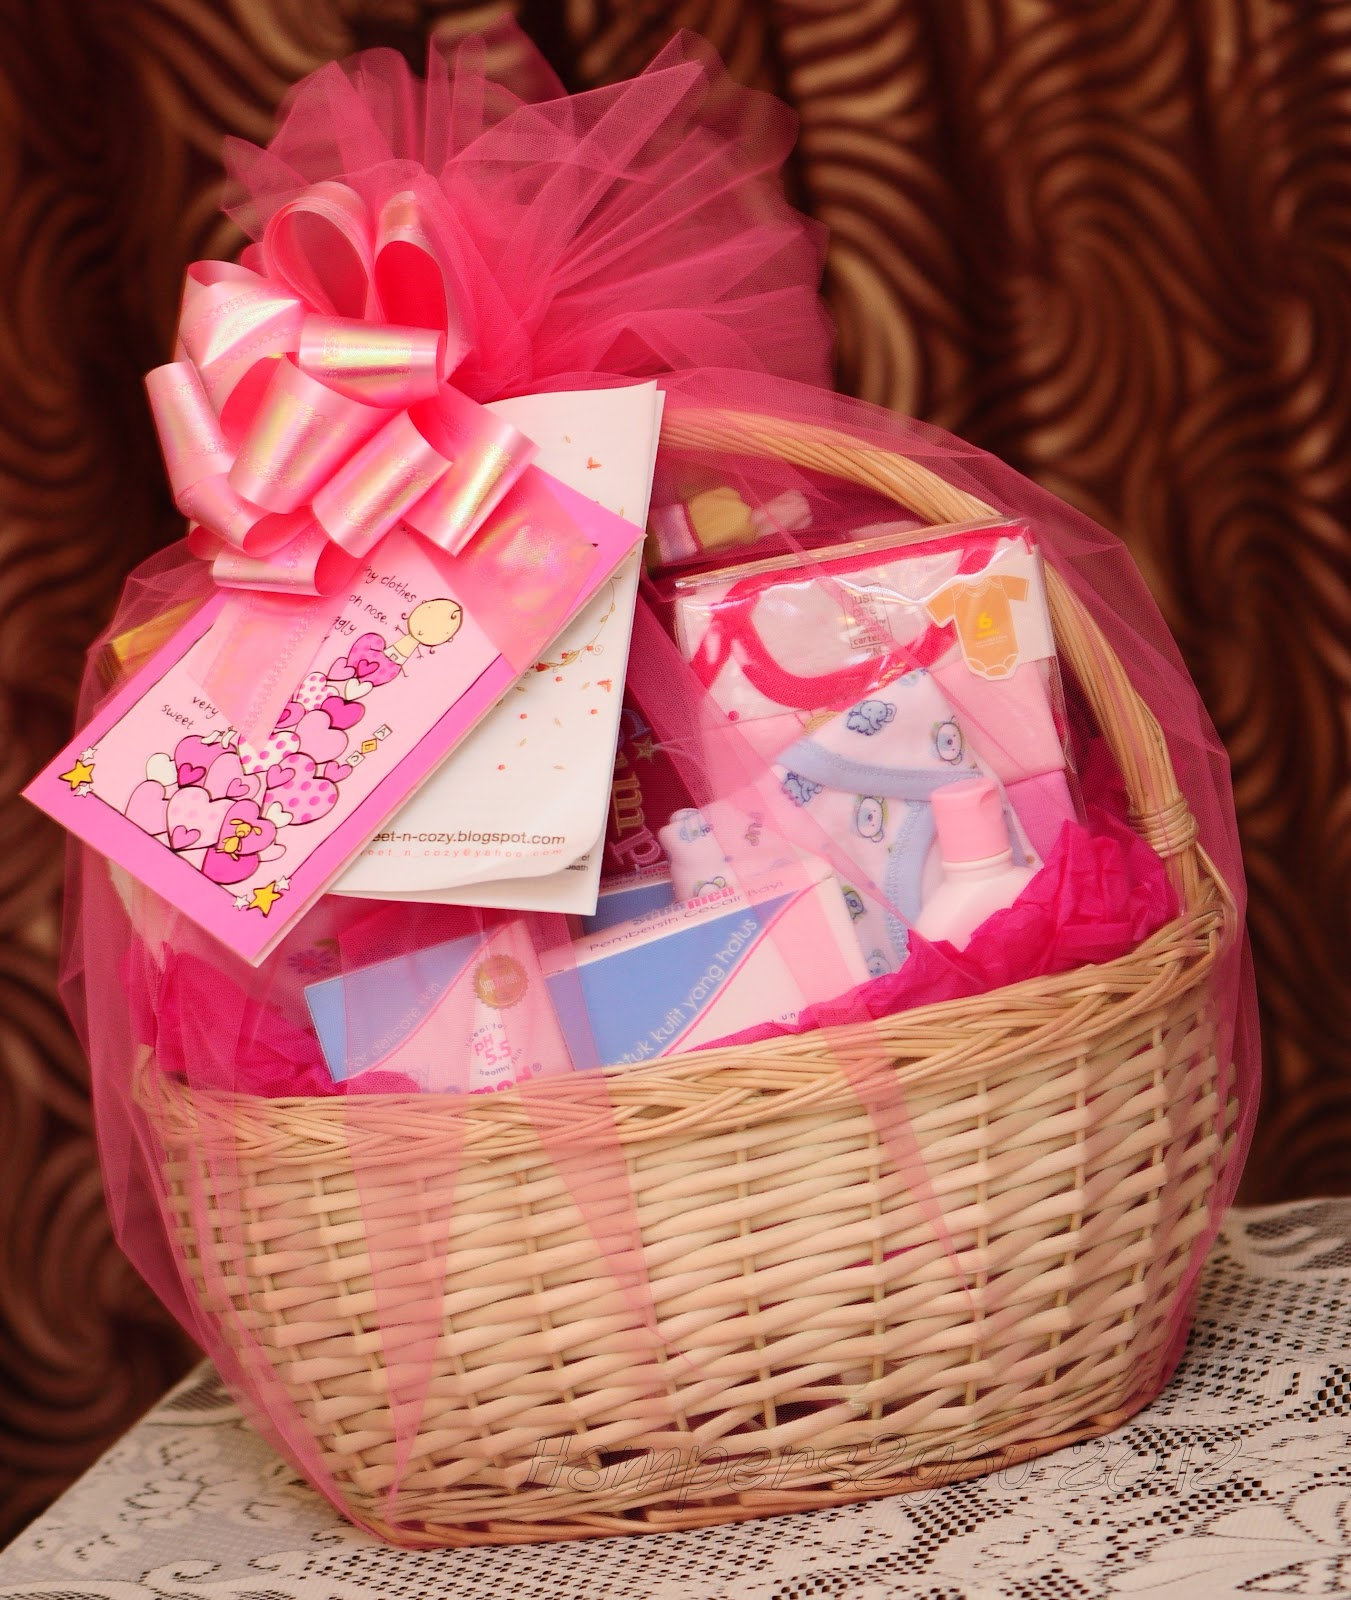 Baby Gift Baskets For Girl : Hampers you baby gift baskets for newborn girl